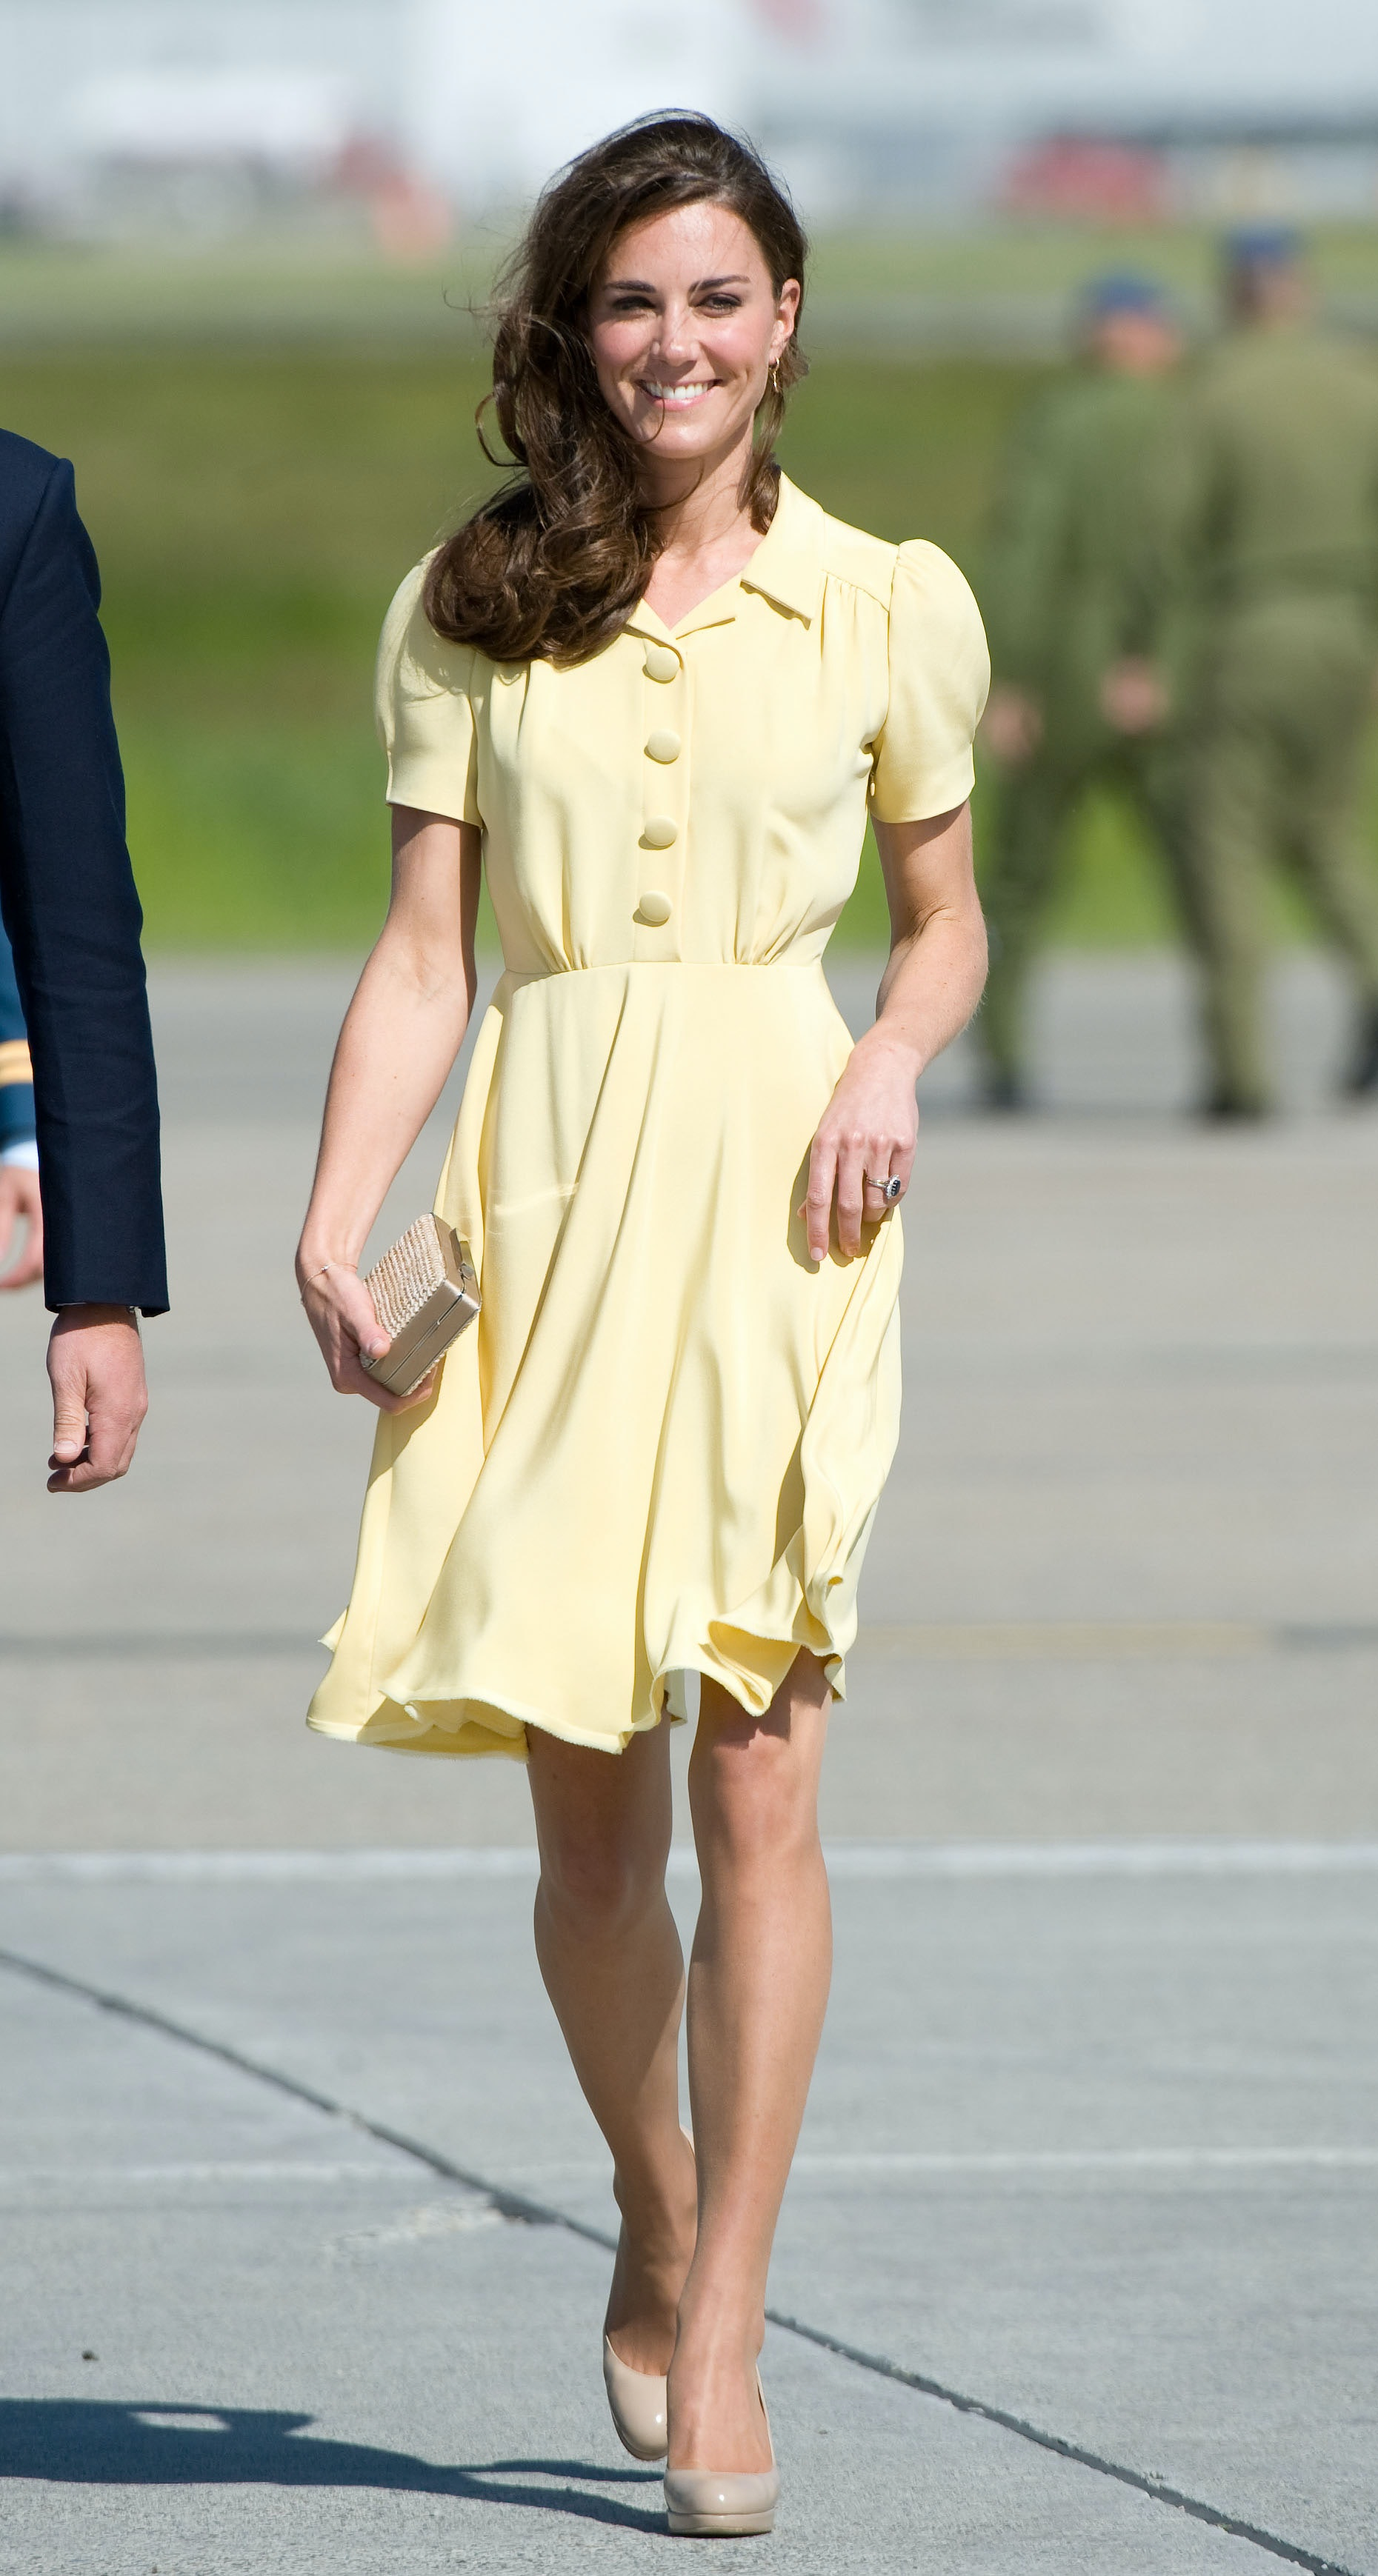 kate middleton s fashion transformation is truly one for the books https www bustle com p kate middletons fashion transformation is truly one for the books 22795183